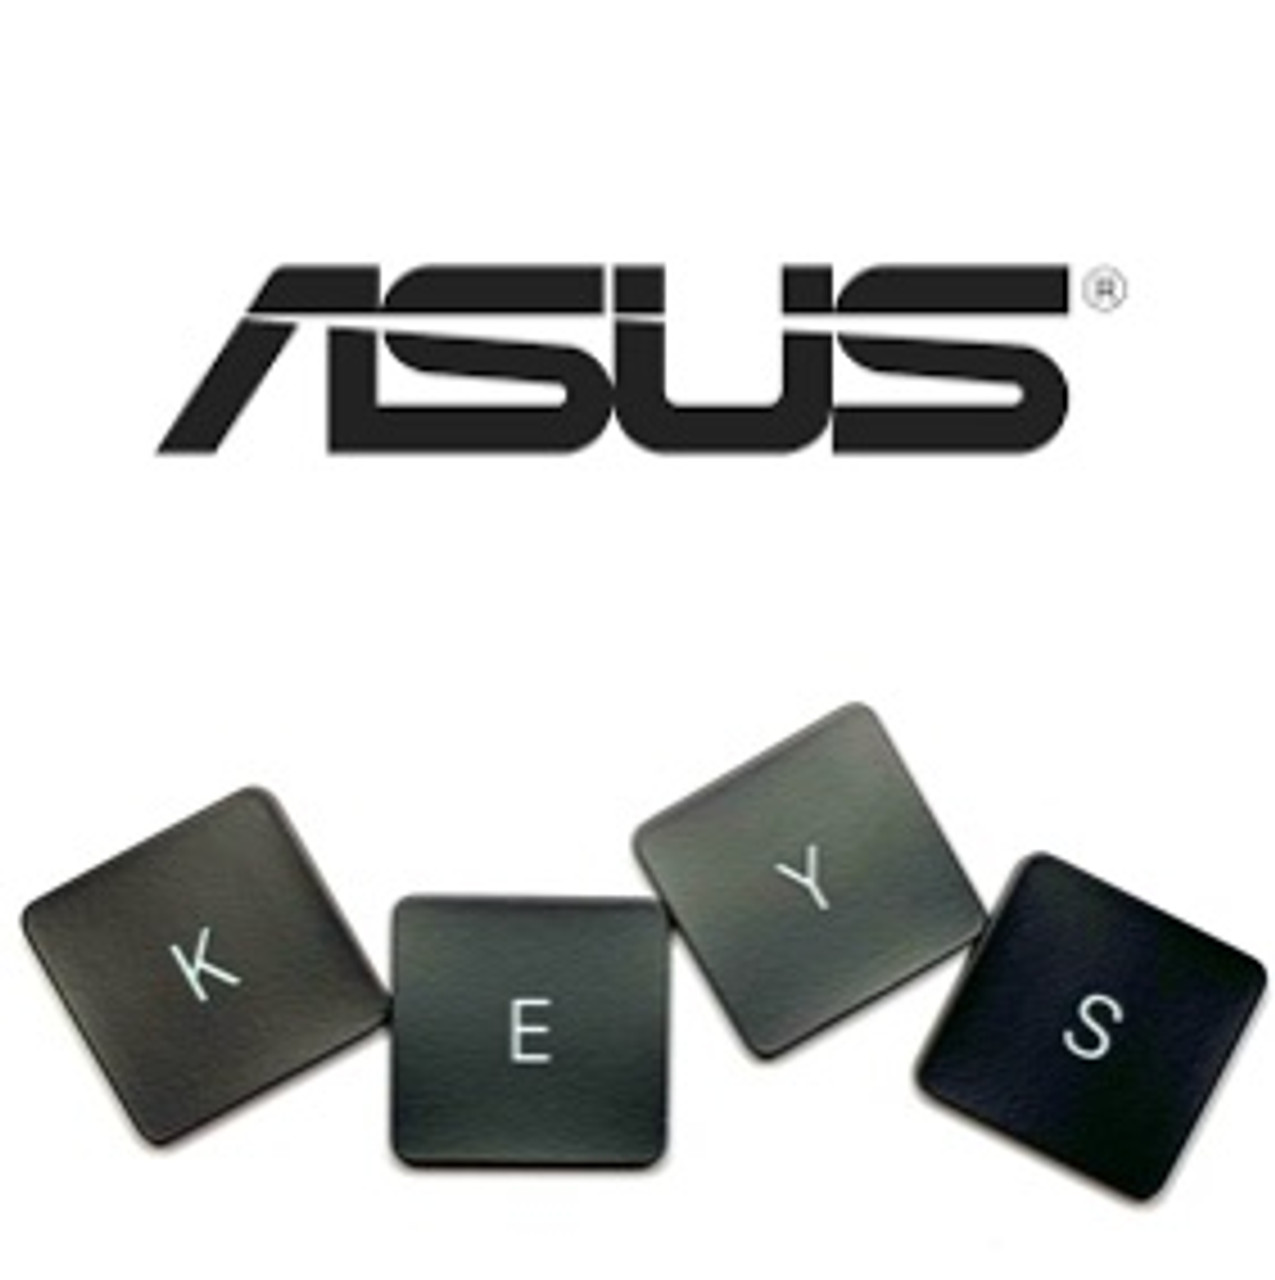 Asus TF300T Transformer Dock Keyboard Keys Replacement